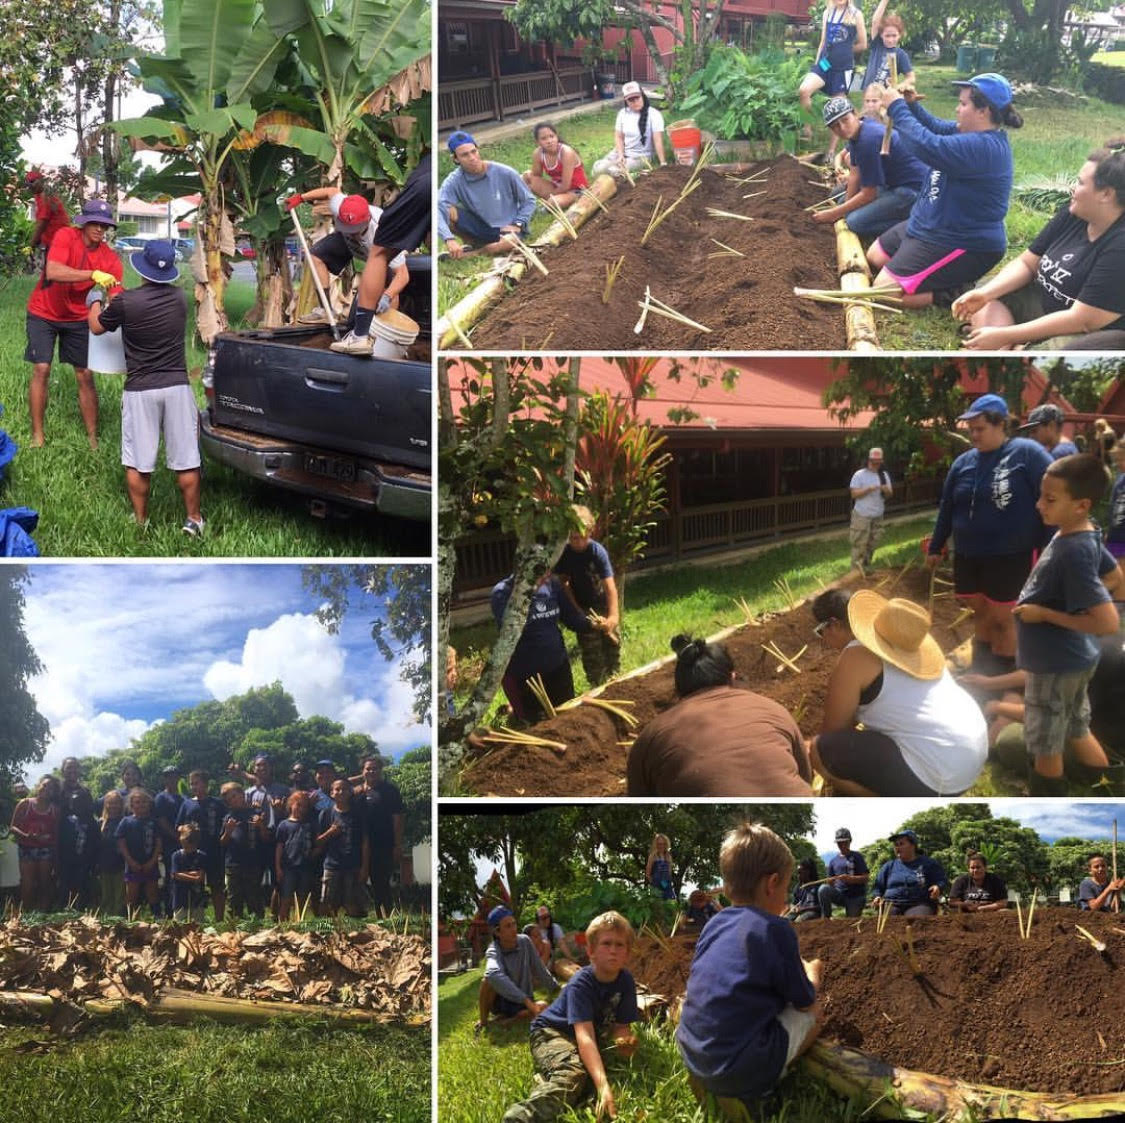 A collage of photos showing students and children working in gardens.